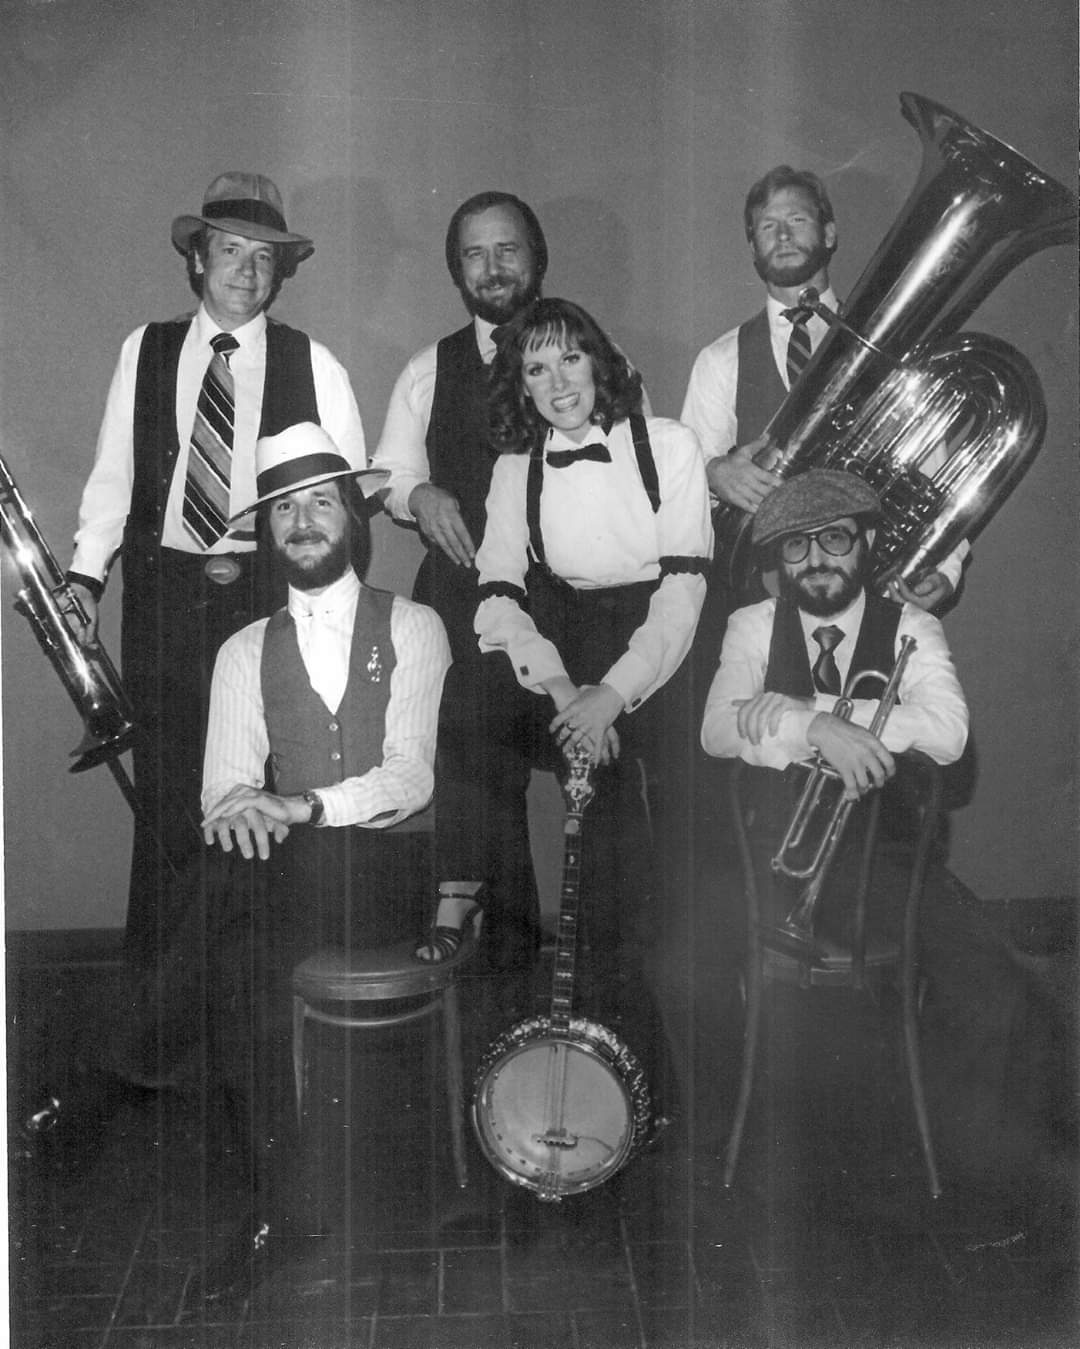 Banu Gibson New Orleans Hot Jazz Orchestra 1981 with Steve